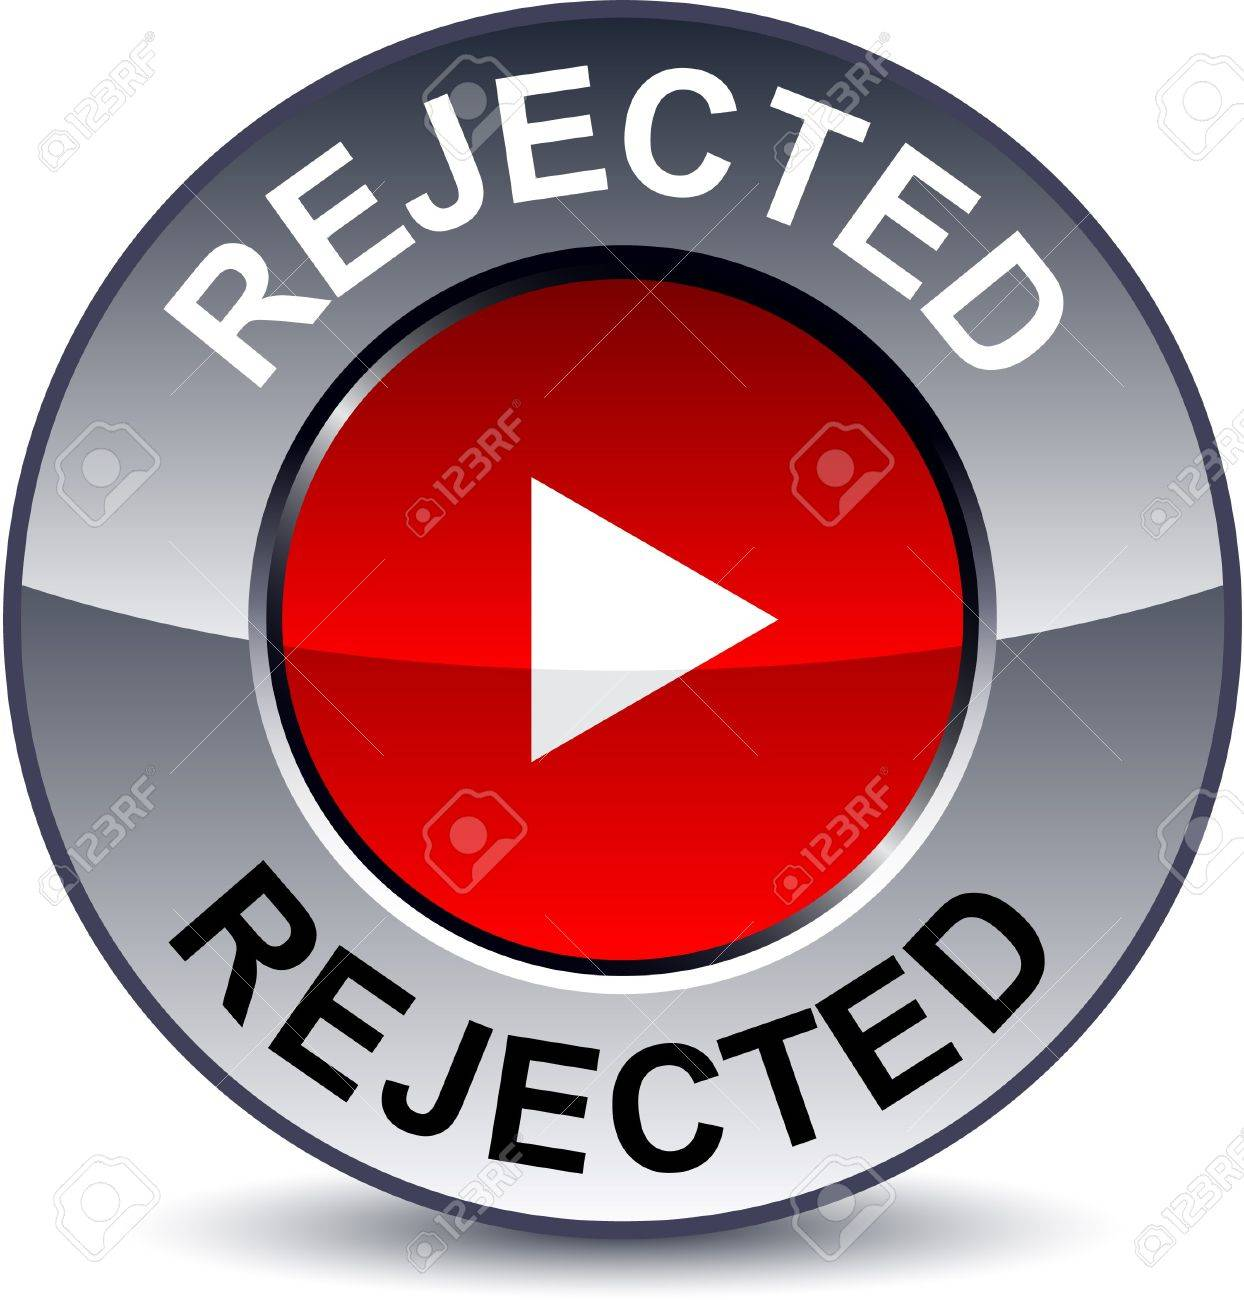 Rejected round metallic button Stock Vector - 7881220